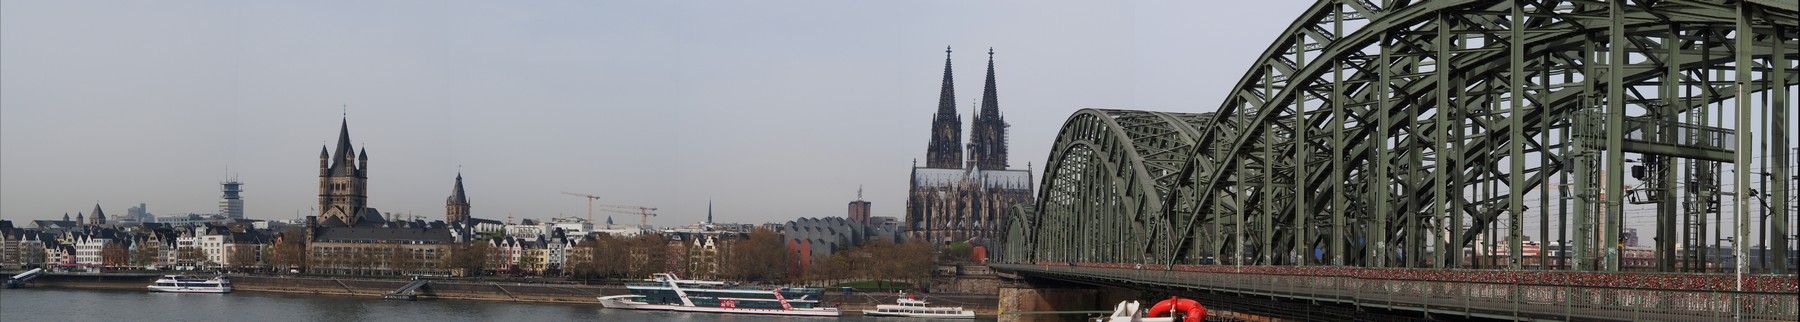 P3315149 Pano Colonia Catedral Alemania Unesco